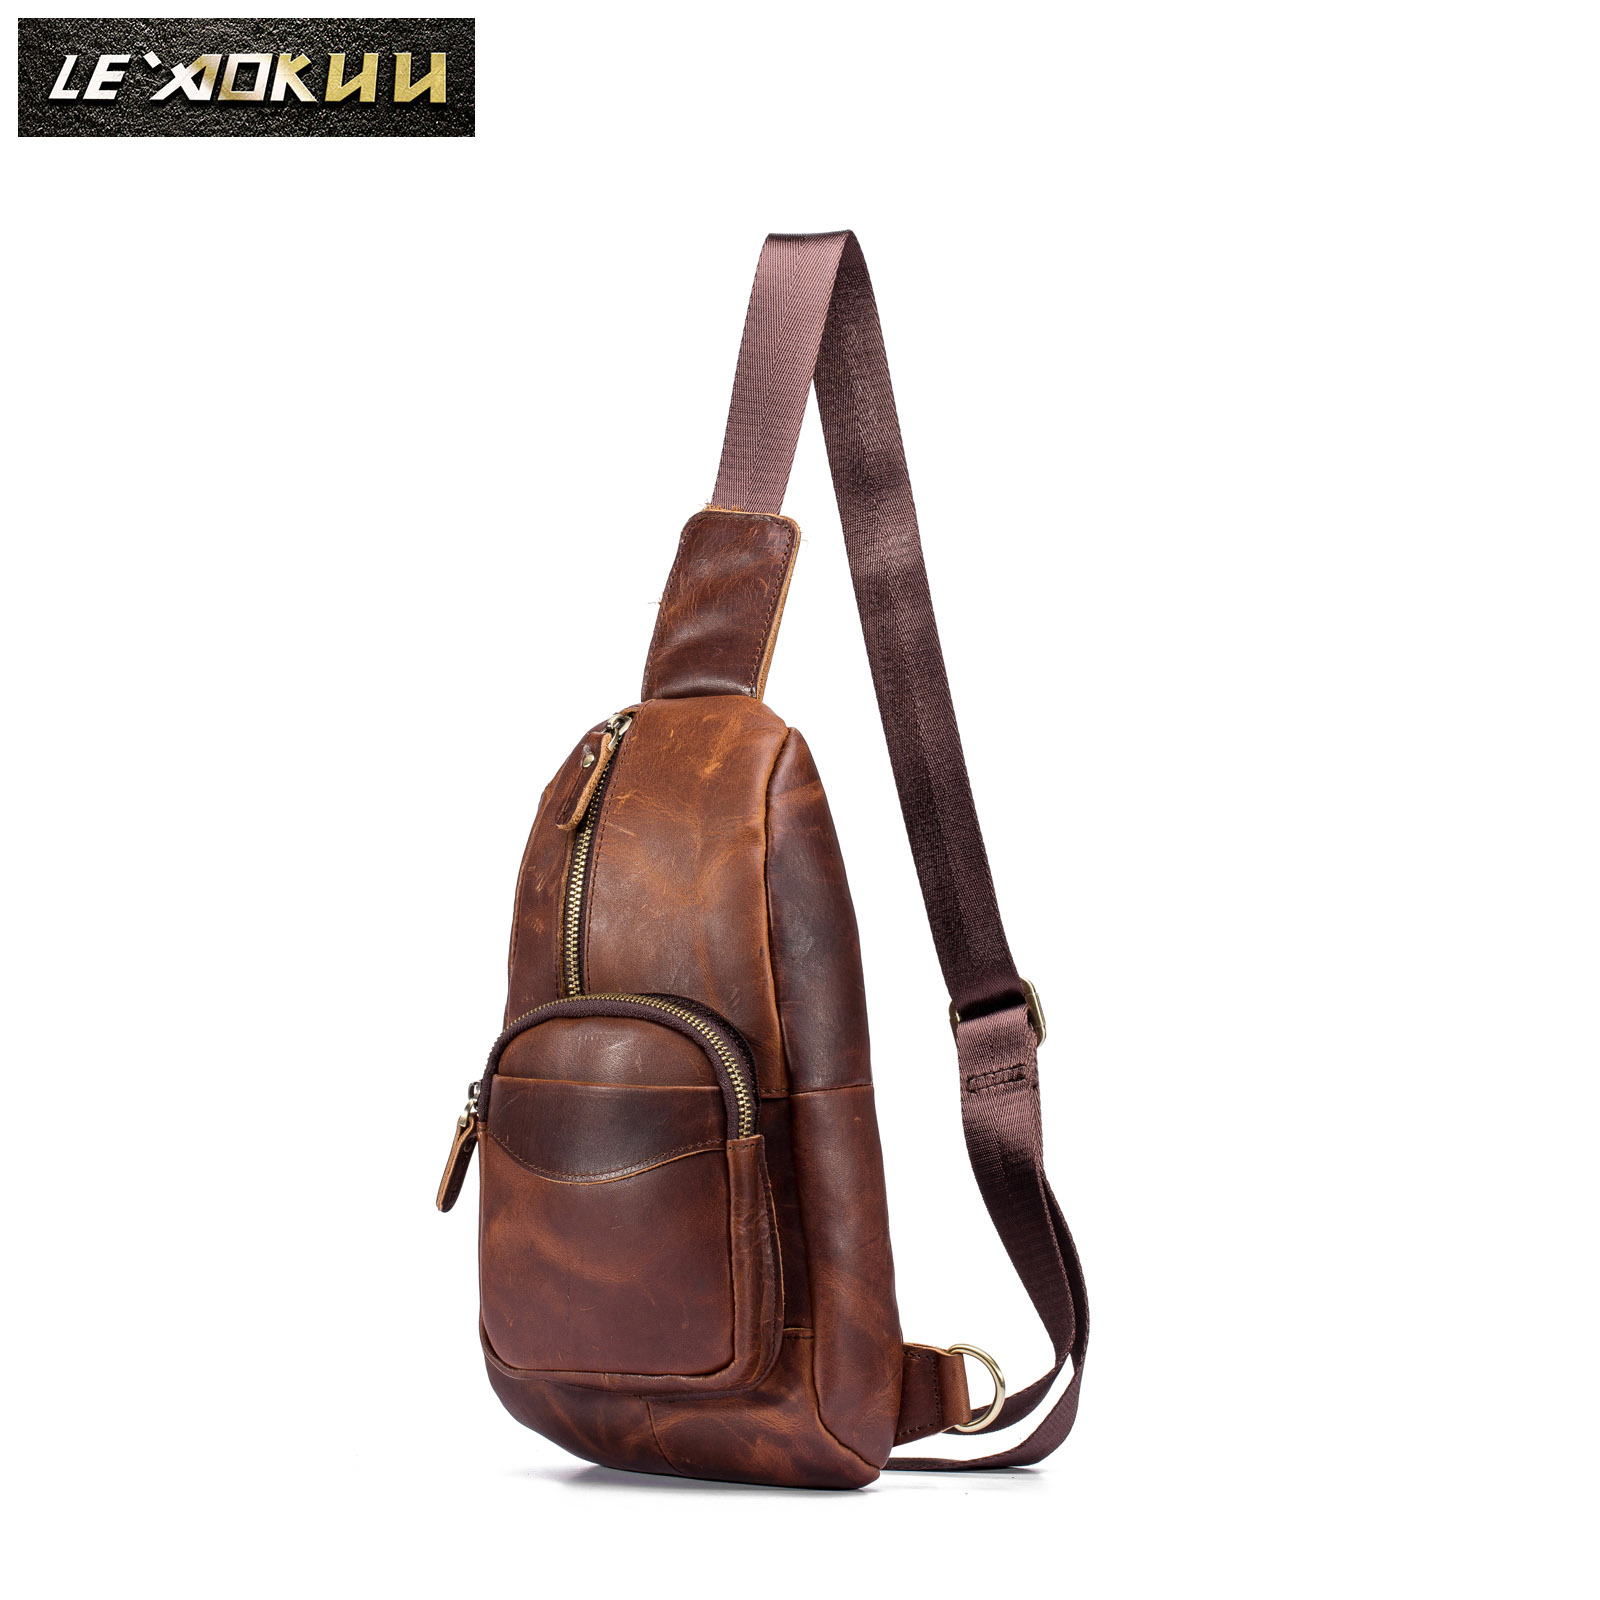 Men Quality Leather Casual Fashion Travel Waist Pack Chest Sling Bag One Shoulder Crossbody Bag Daypack For Male 8012-db